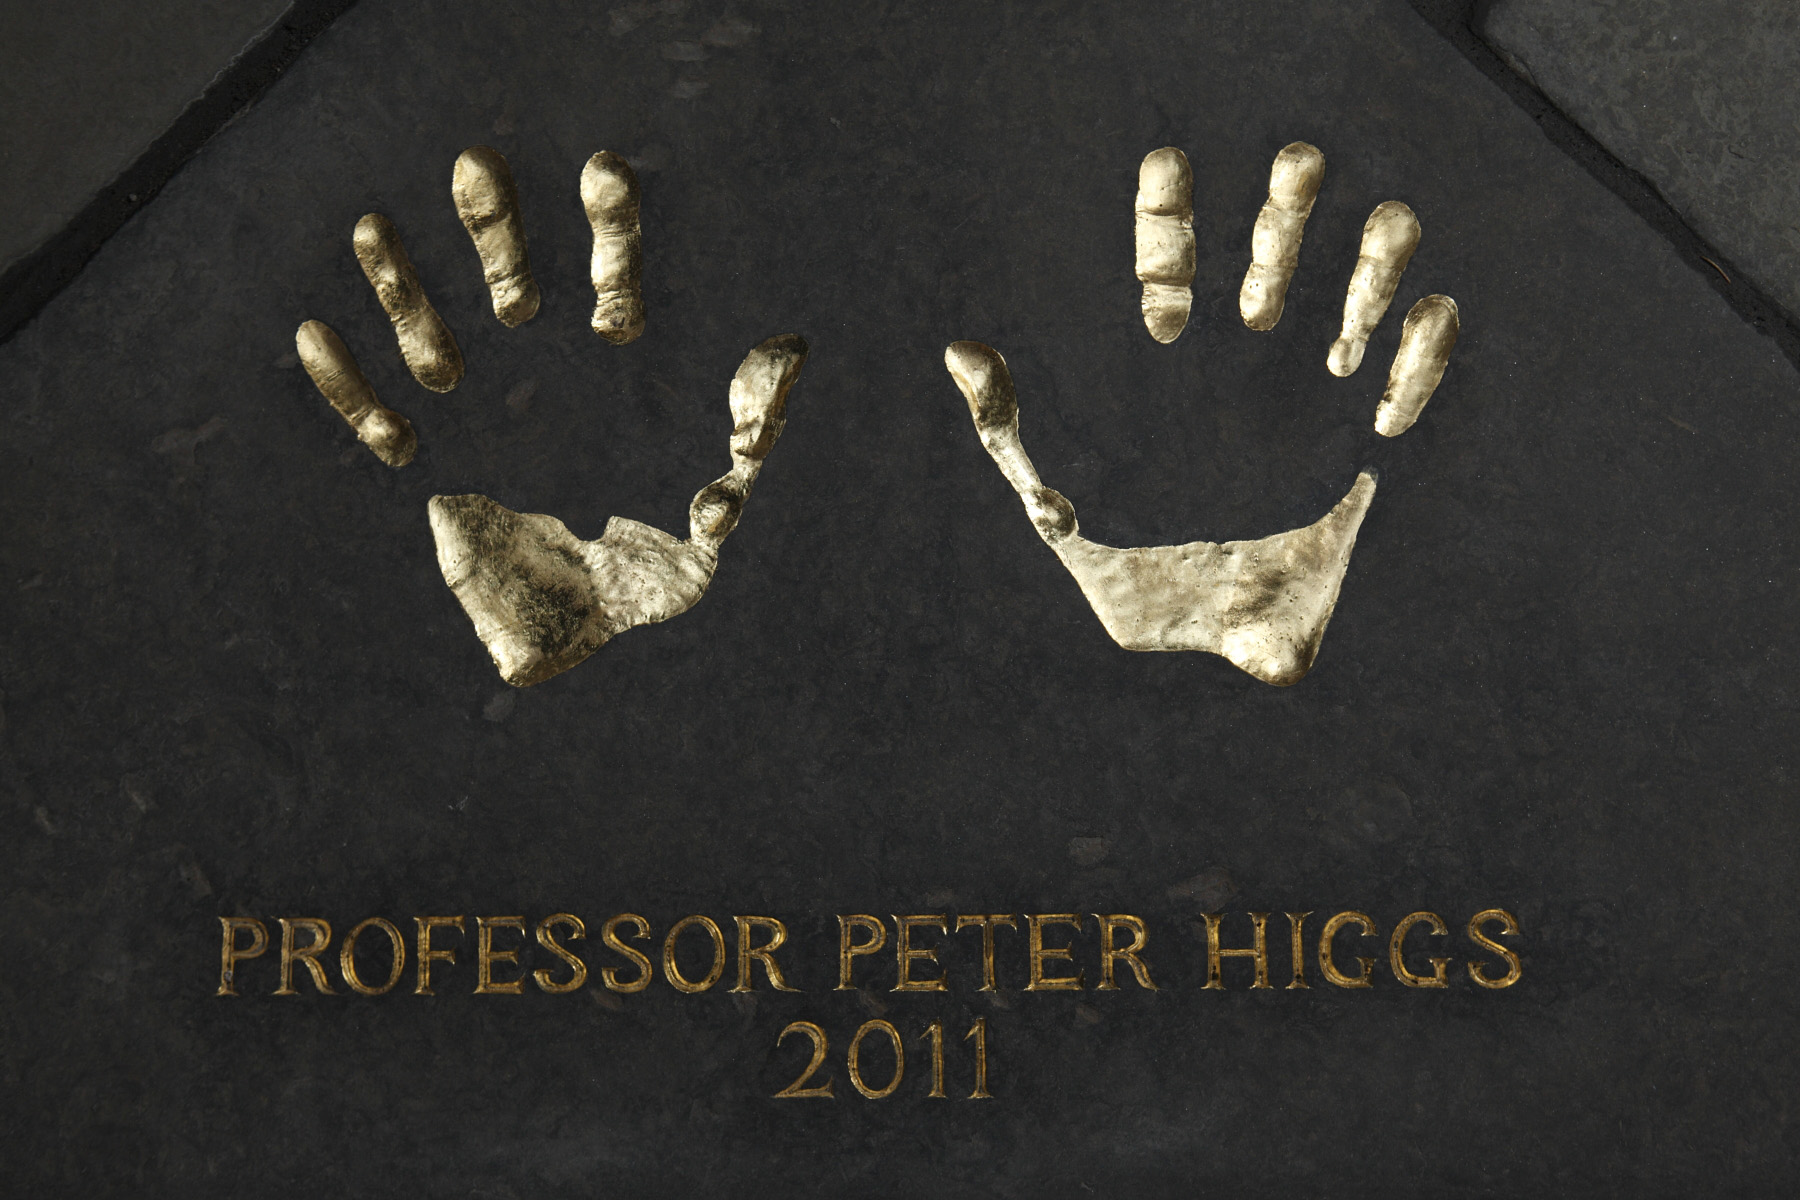 Copied from impression made in clay, Peter's hand prints were sculpted into a slab of Caithness stone which was relaid in the quadrangle of the City of Edinburgh City Chambers.